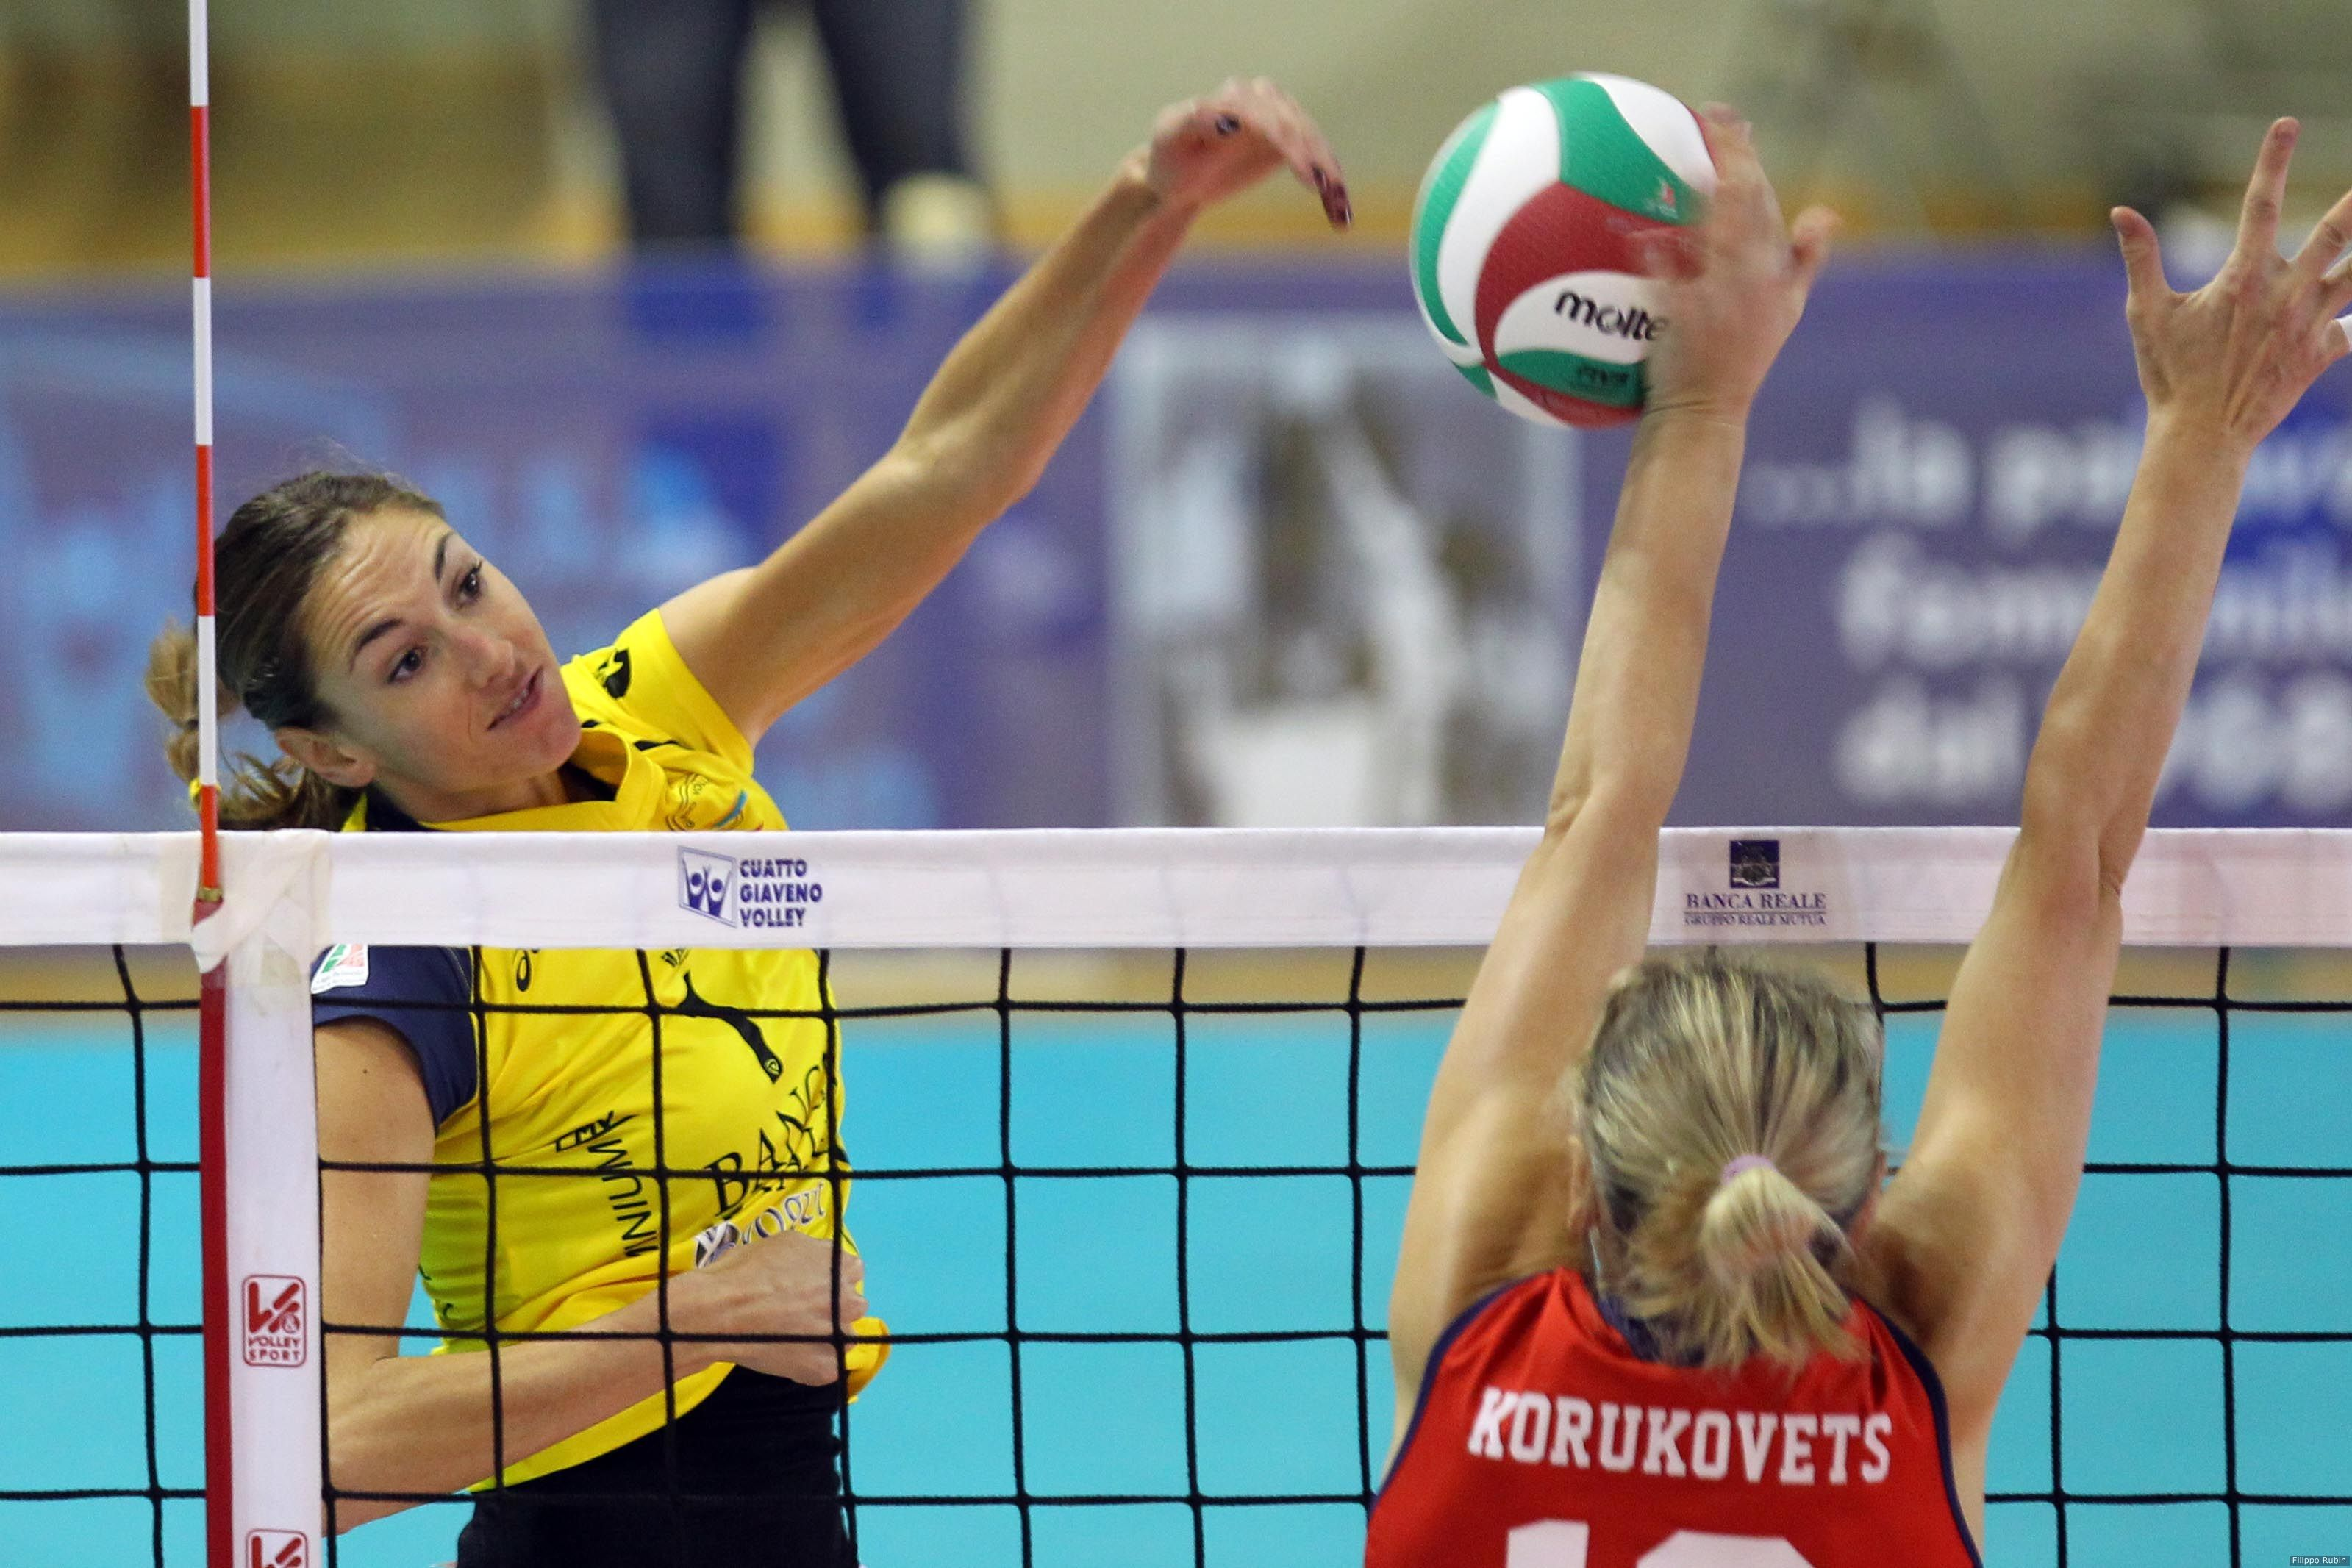 U S Women S National Team Where Are They Now Http Ow Ly Ess5b Courtesy Of Usa Volleyball